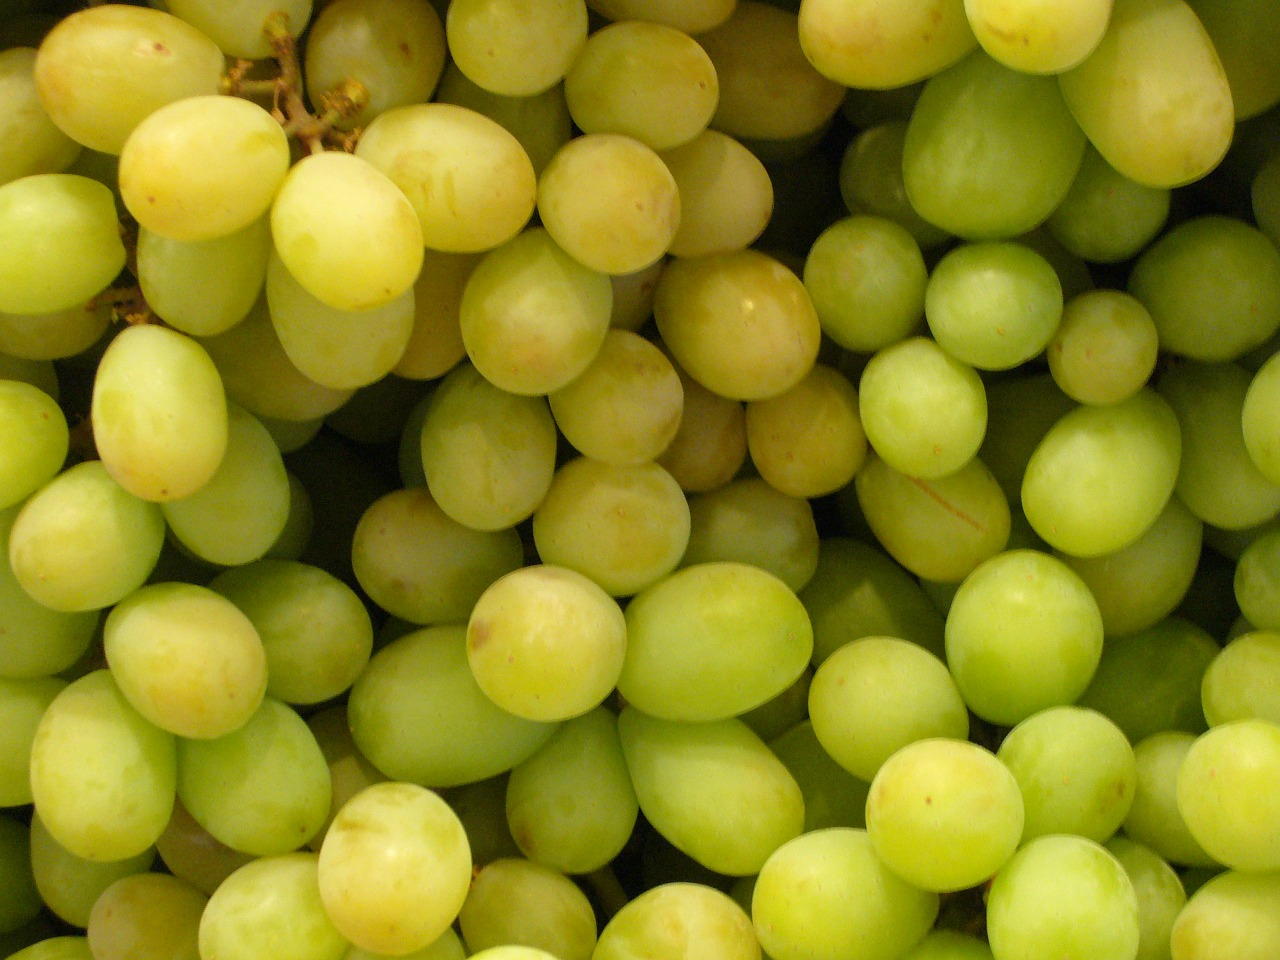 grapes,fruit,green,market,healthy,vitamins,food,free pictures, free photos, free images, royalty free, free illustrations, public domain